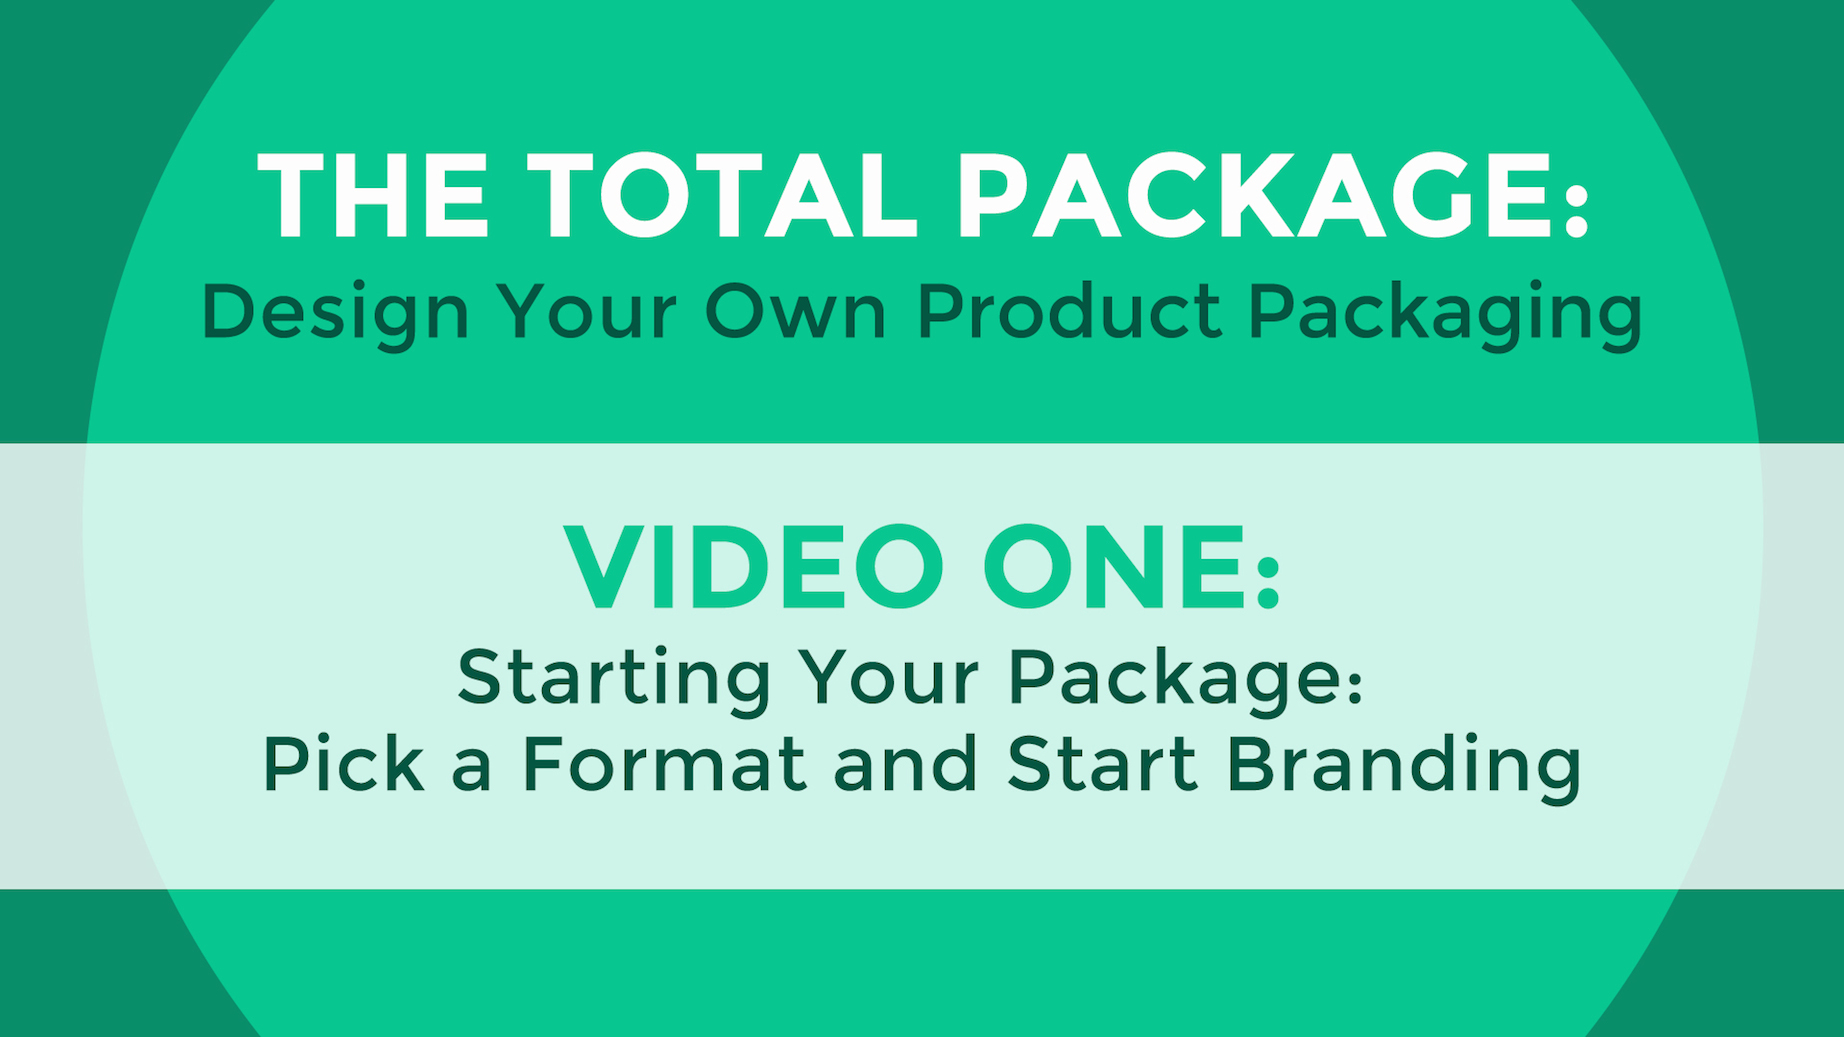 The Total Package: Design Your Own Product Packaging